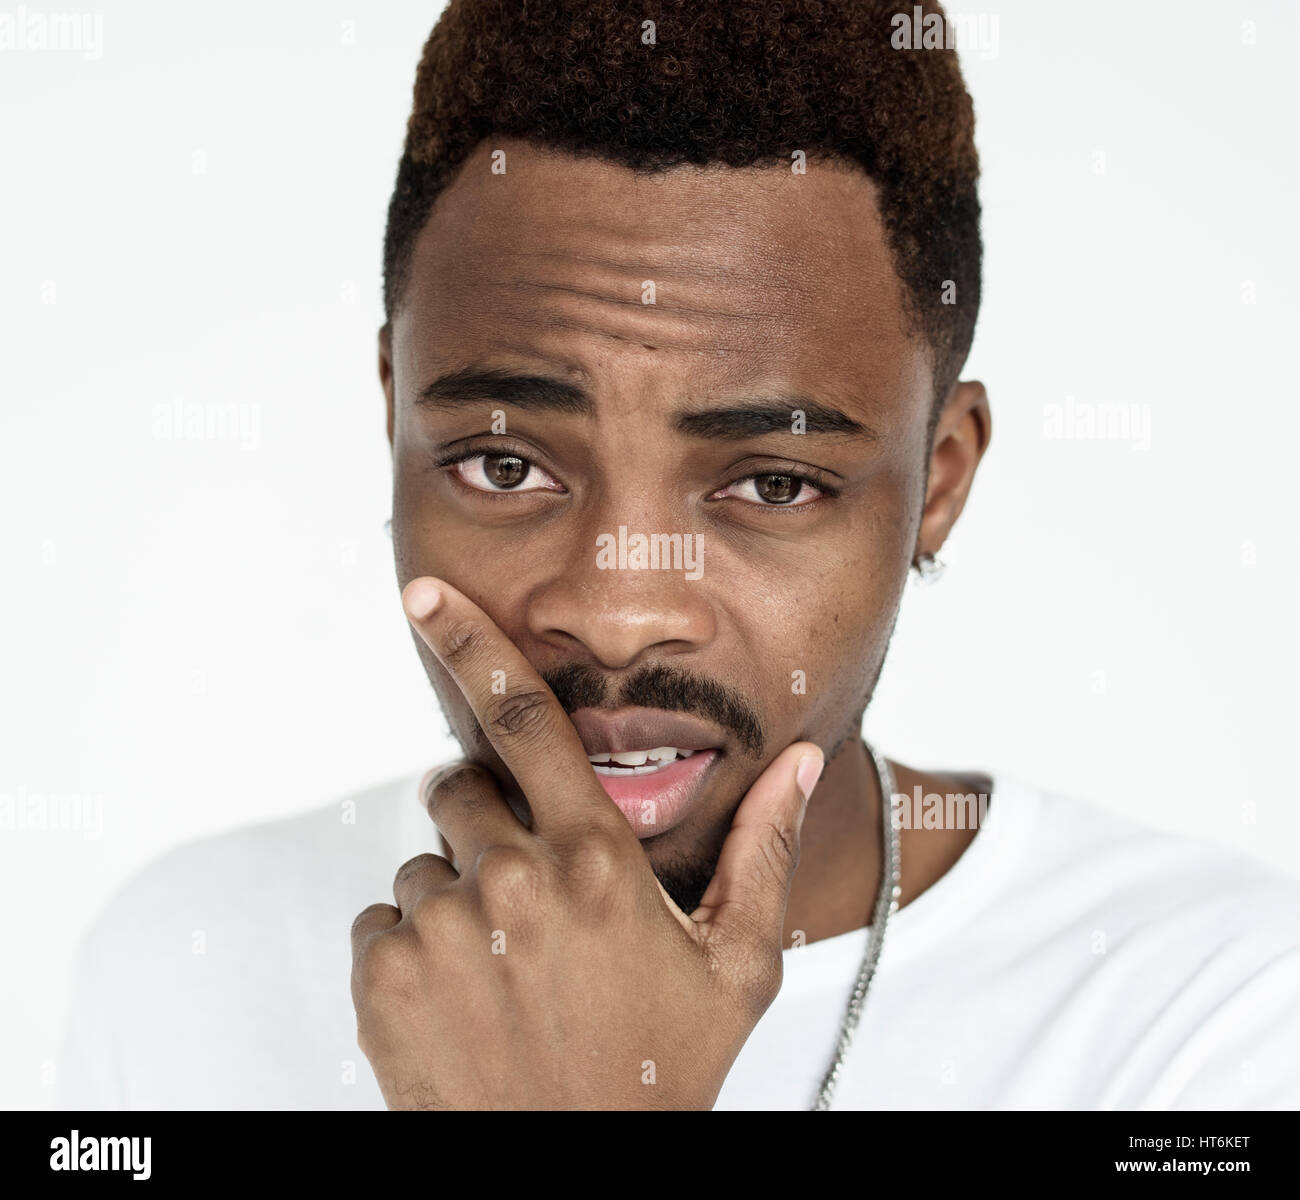 Young black guy sultry pose hand on face - Stock Image